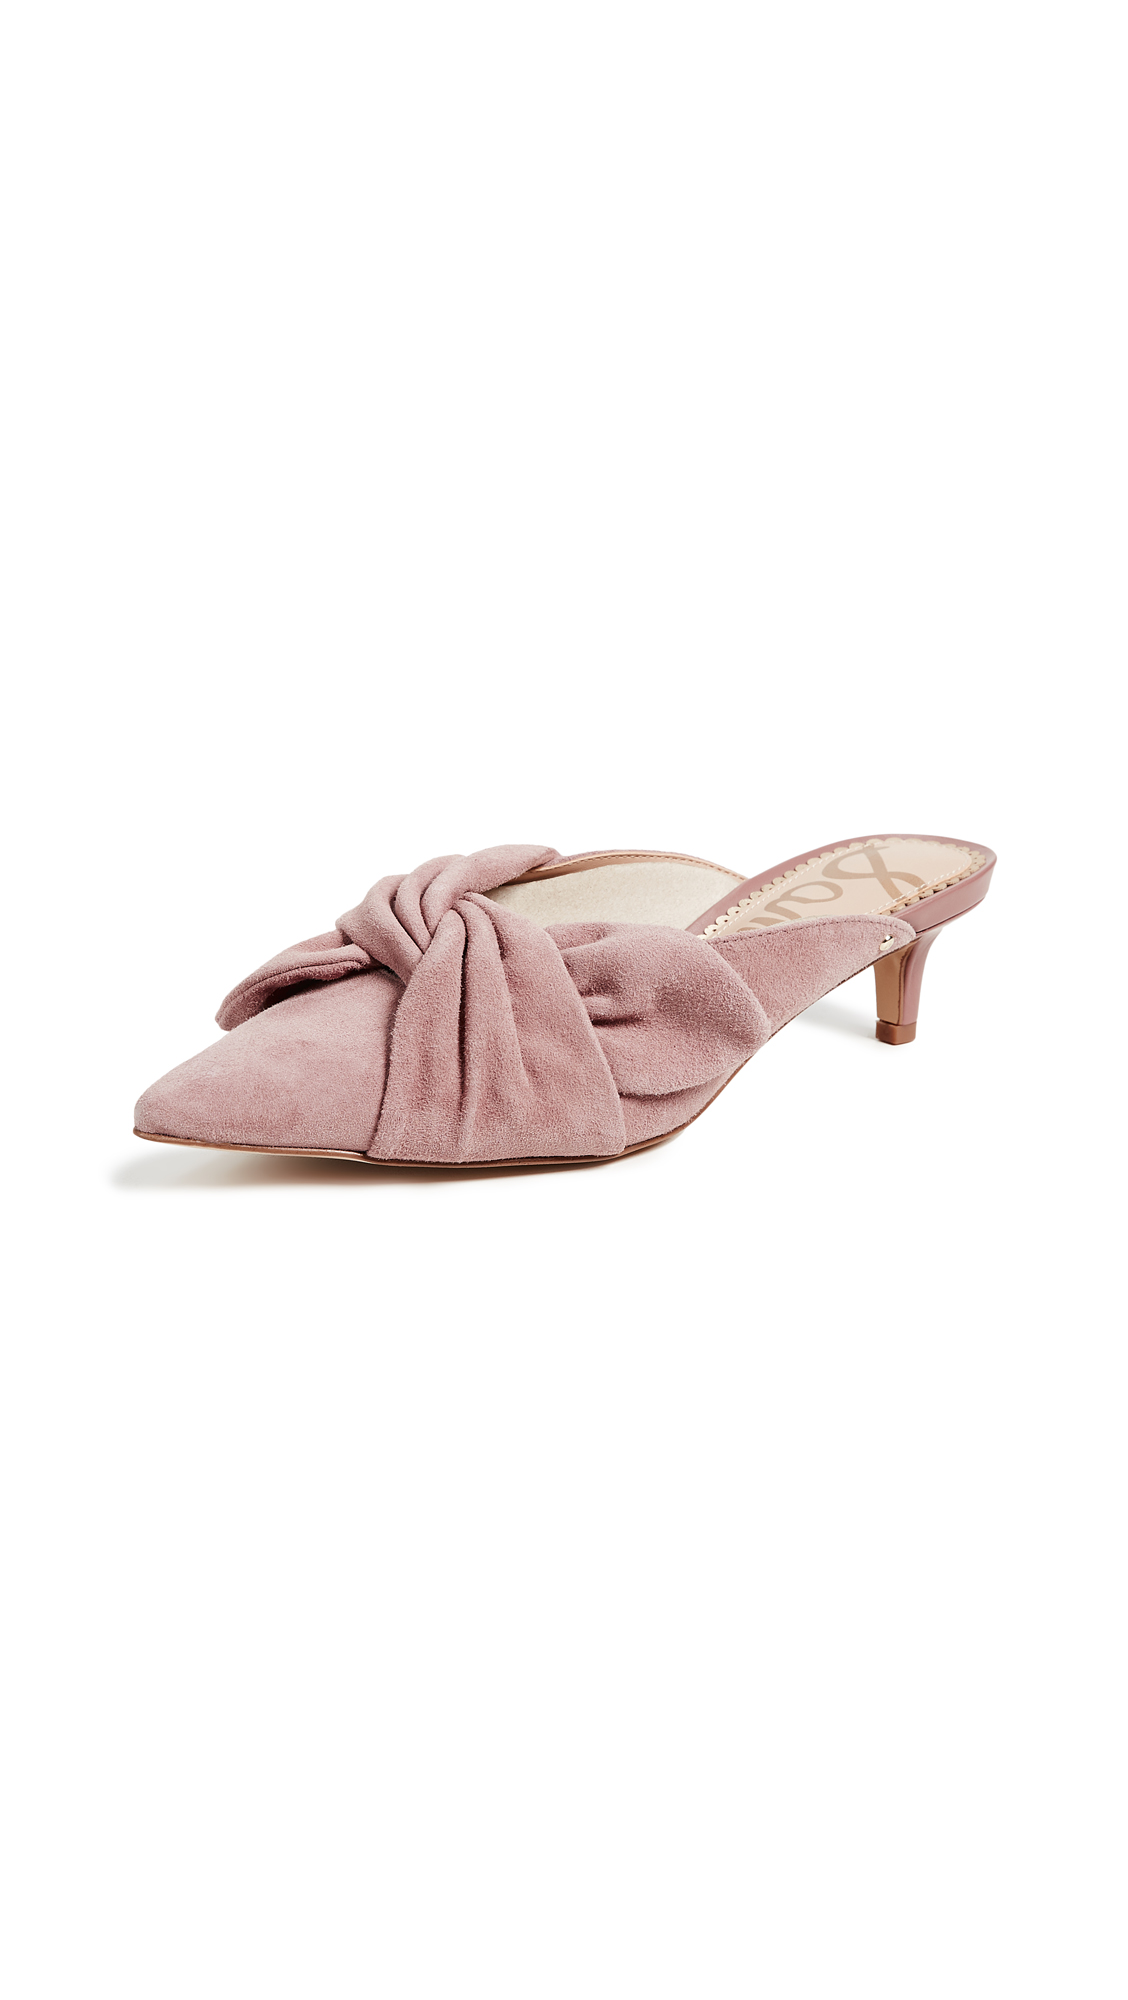 Sam Edelman Laney Bow Mules - Dusty Rose